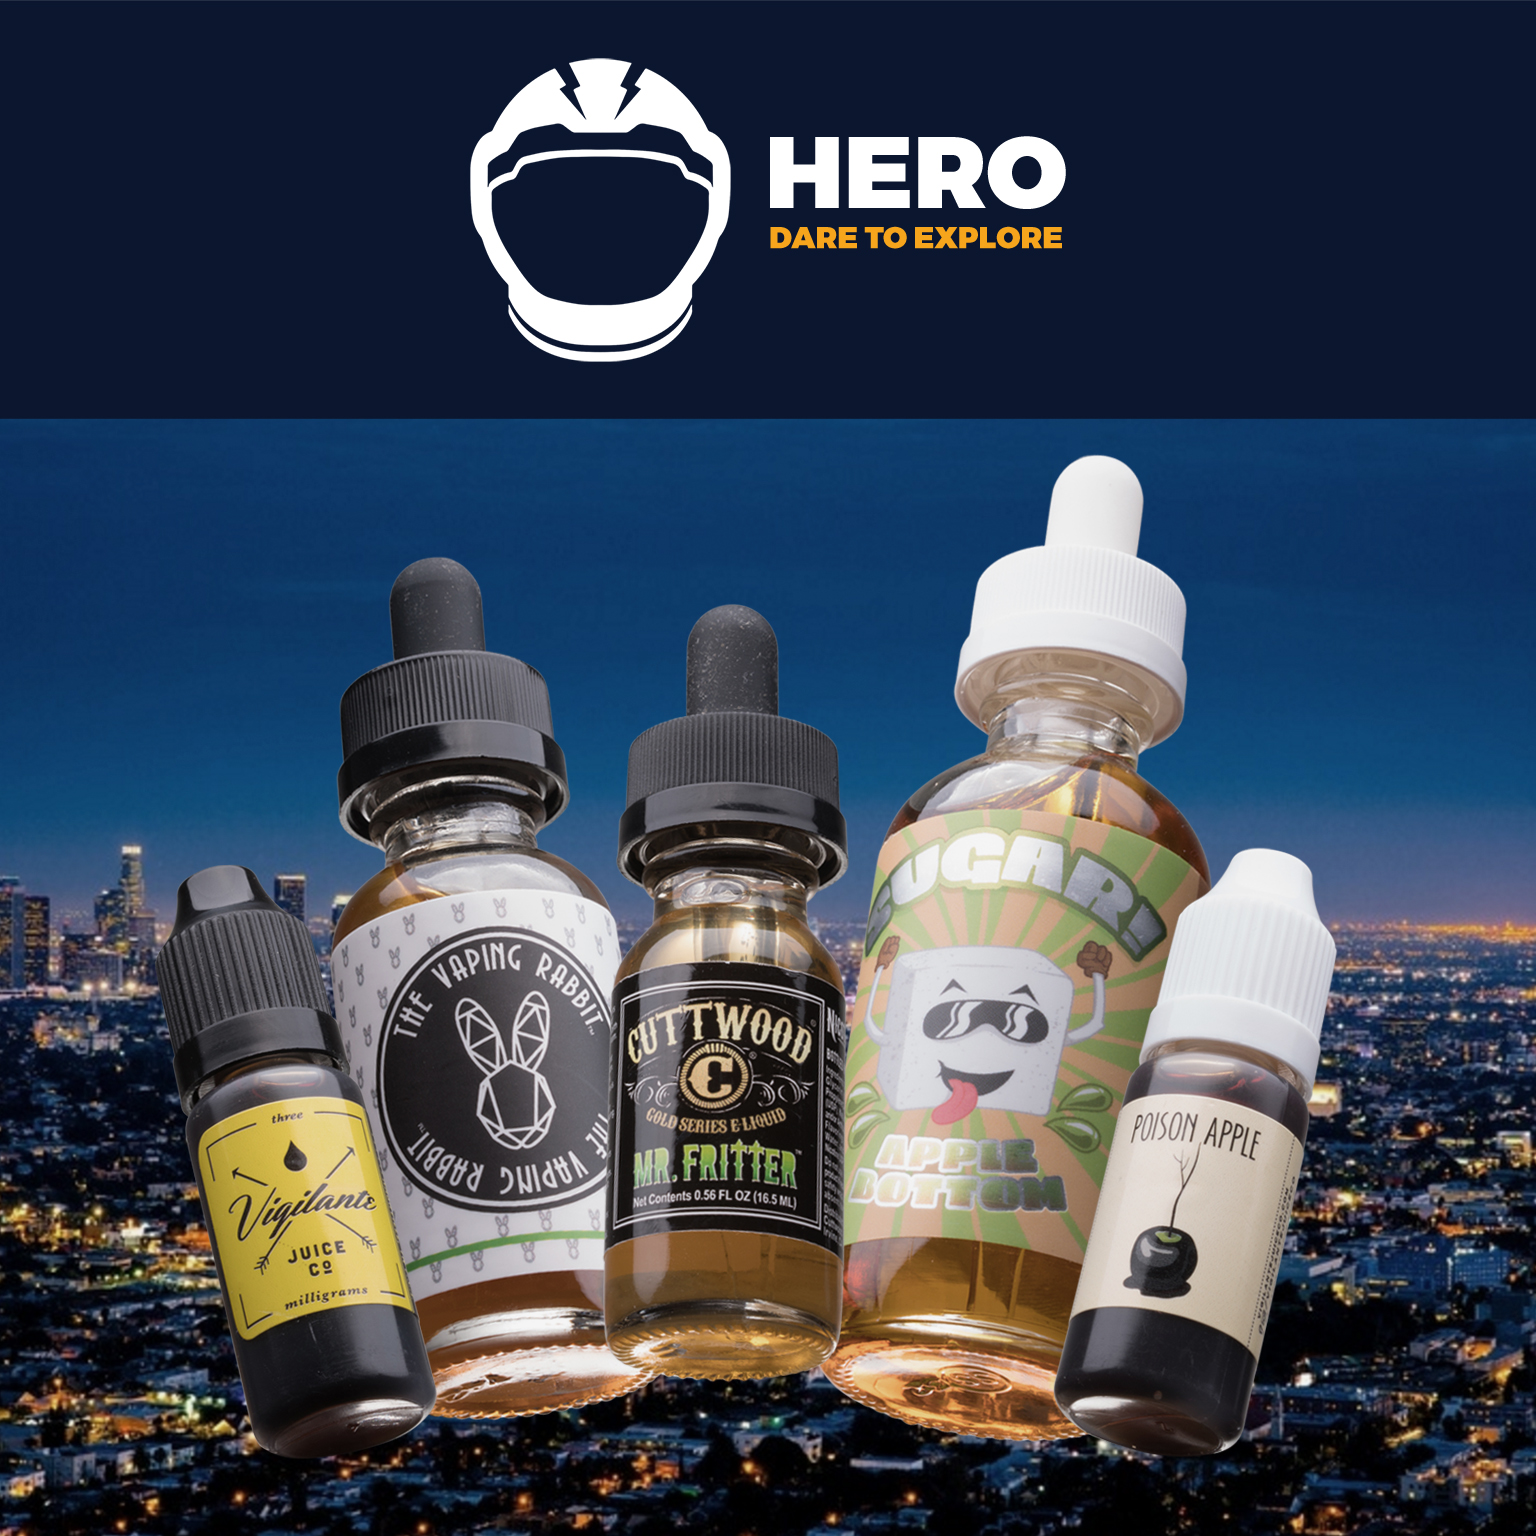 125mL SUPER HERO  Box | Feat. Apple Bottom by Sugar!, The Hatter by The Vaping Rabbit, Mr. Fritter by Cuttwood, VIP by Vigilante Juice Co., and Poison Apply by Twig & Berries Photo